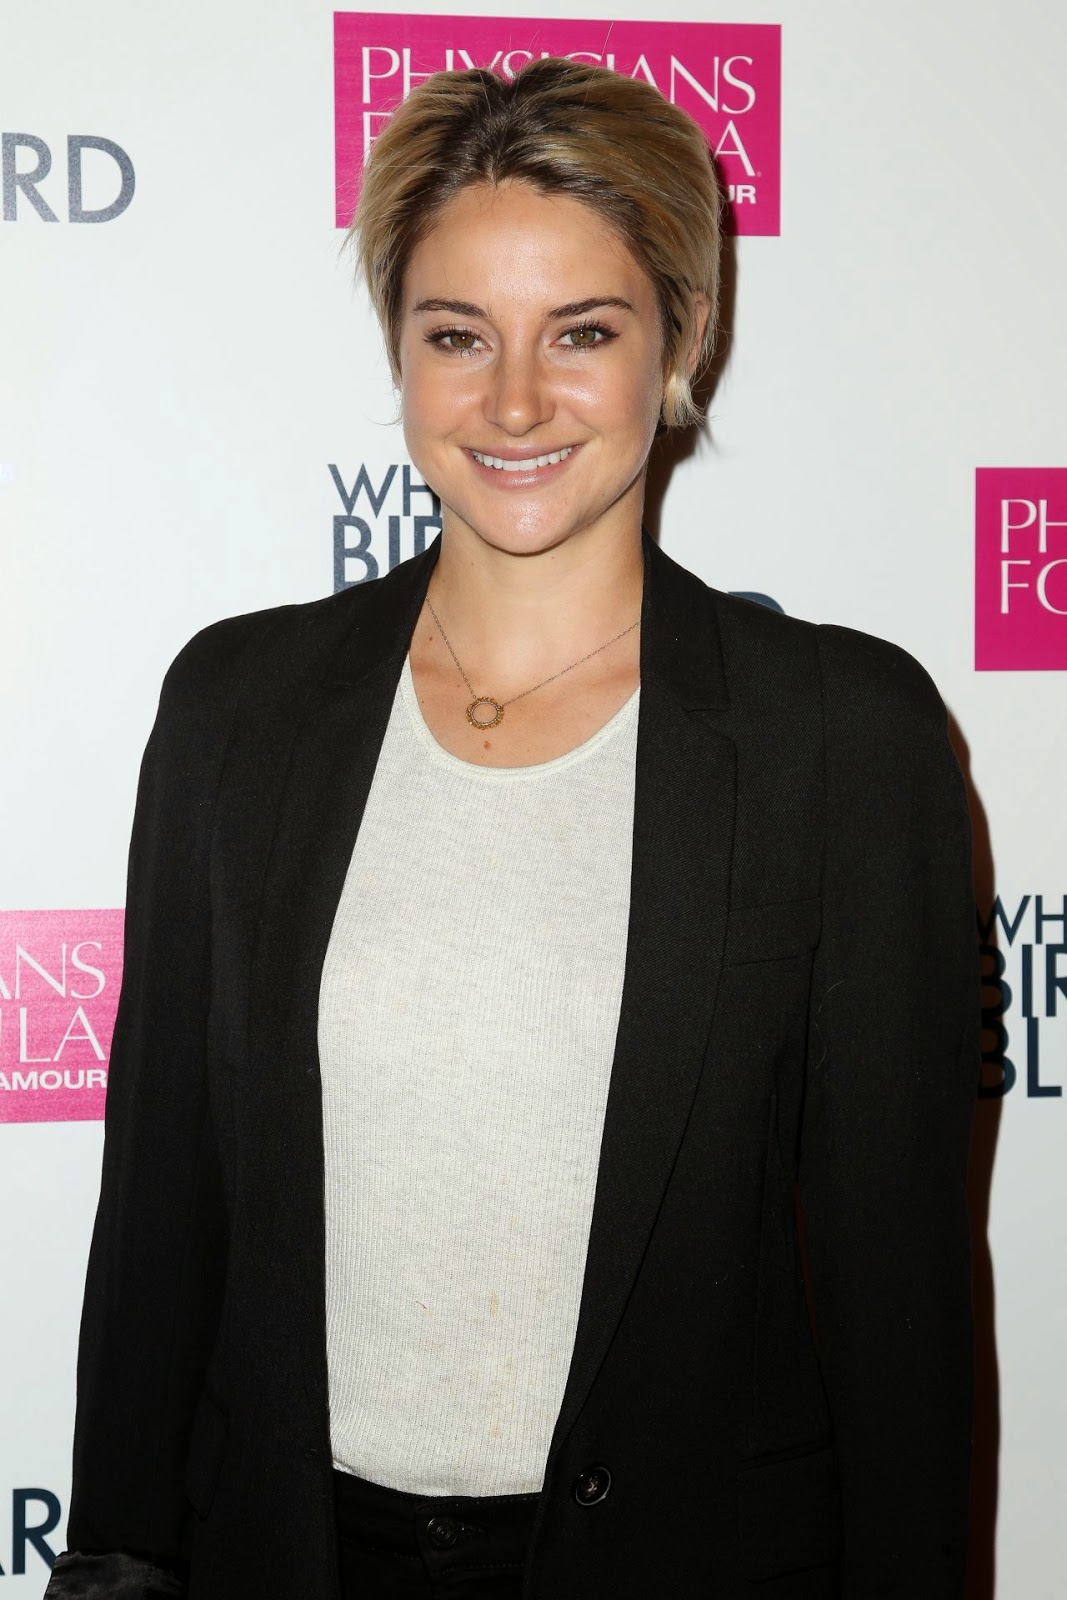 Shailene Woodley wears a black pant suit look for the 'White Bird in a Blizzard' LA premiere